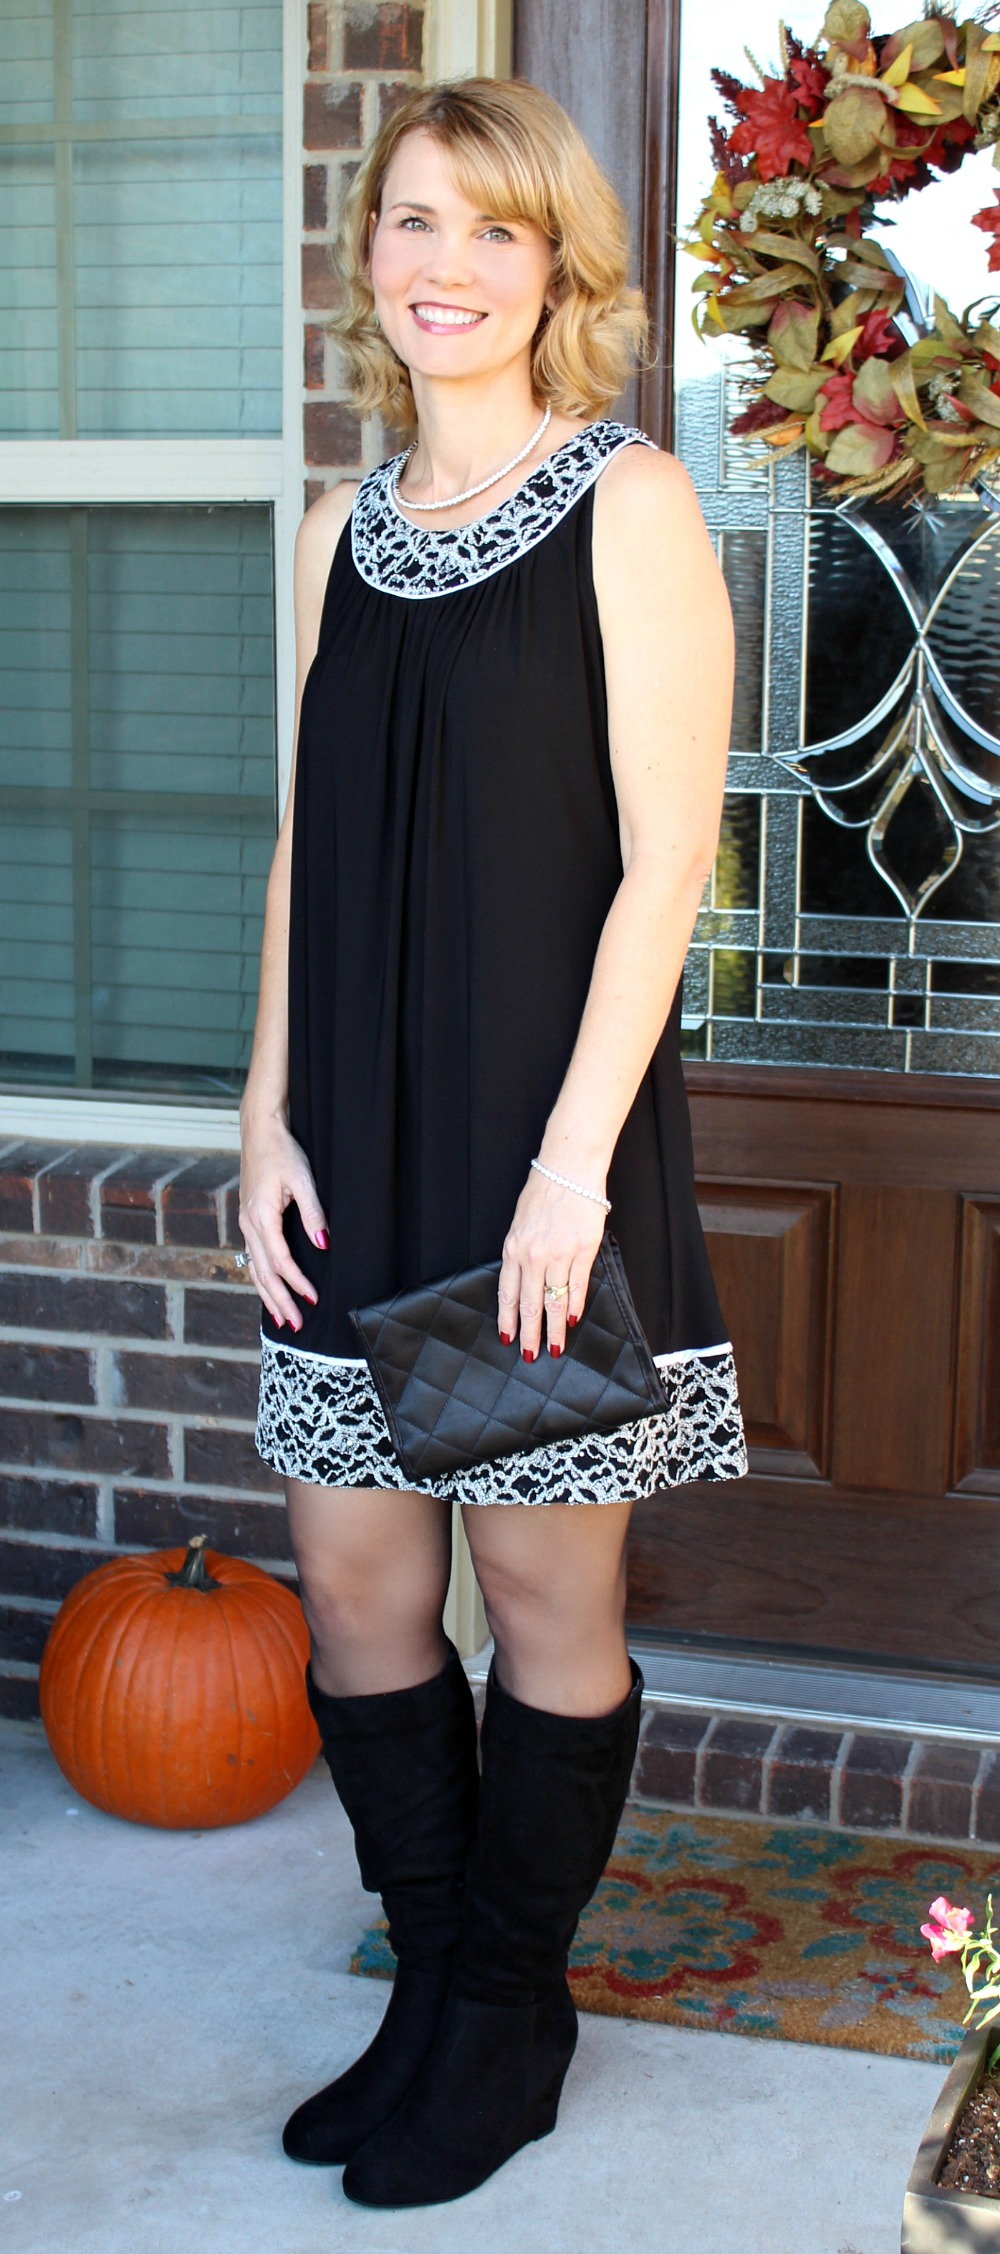 dressy dress with boots